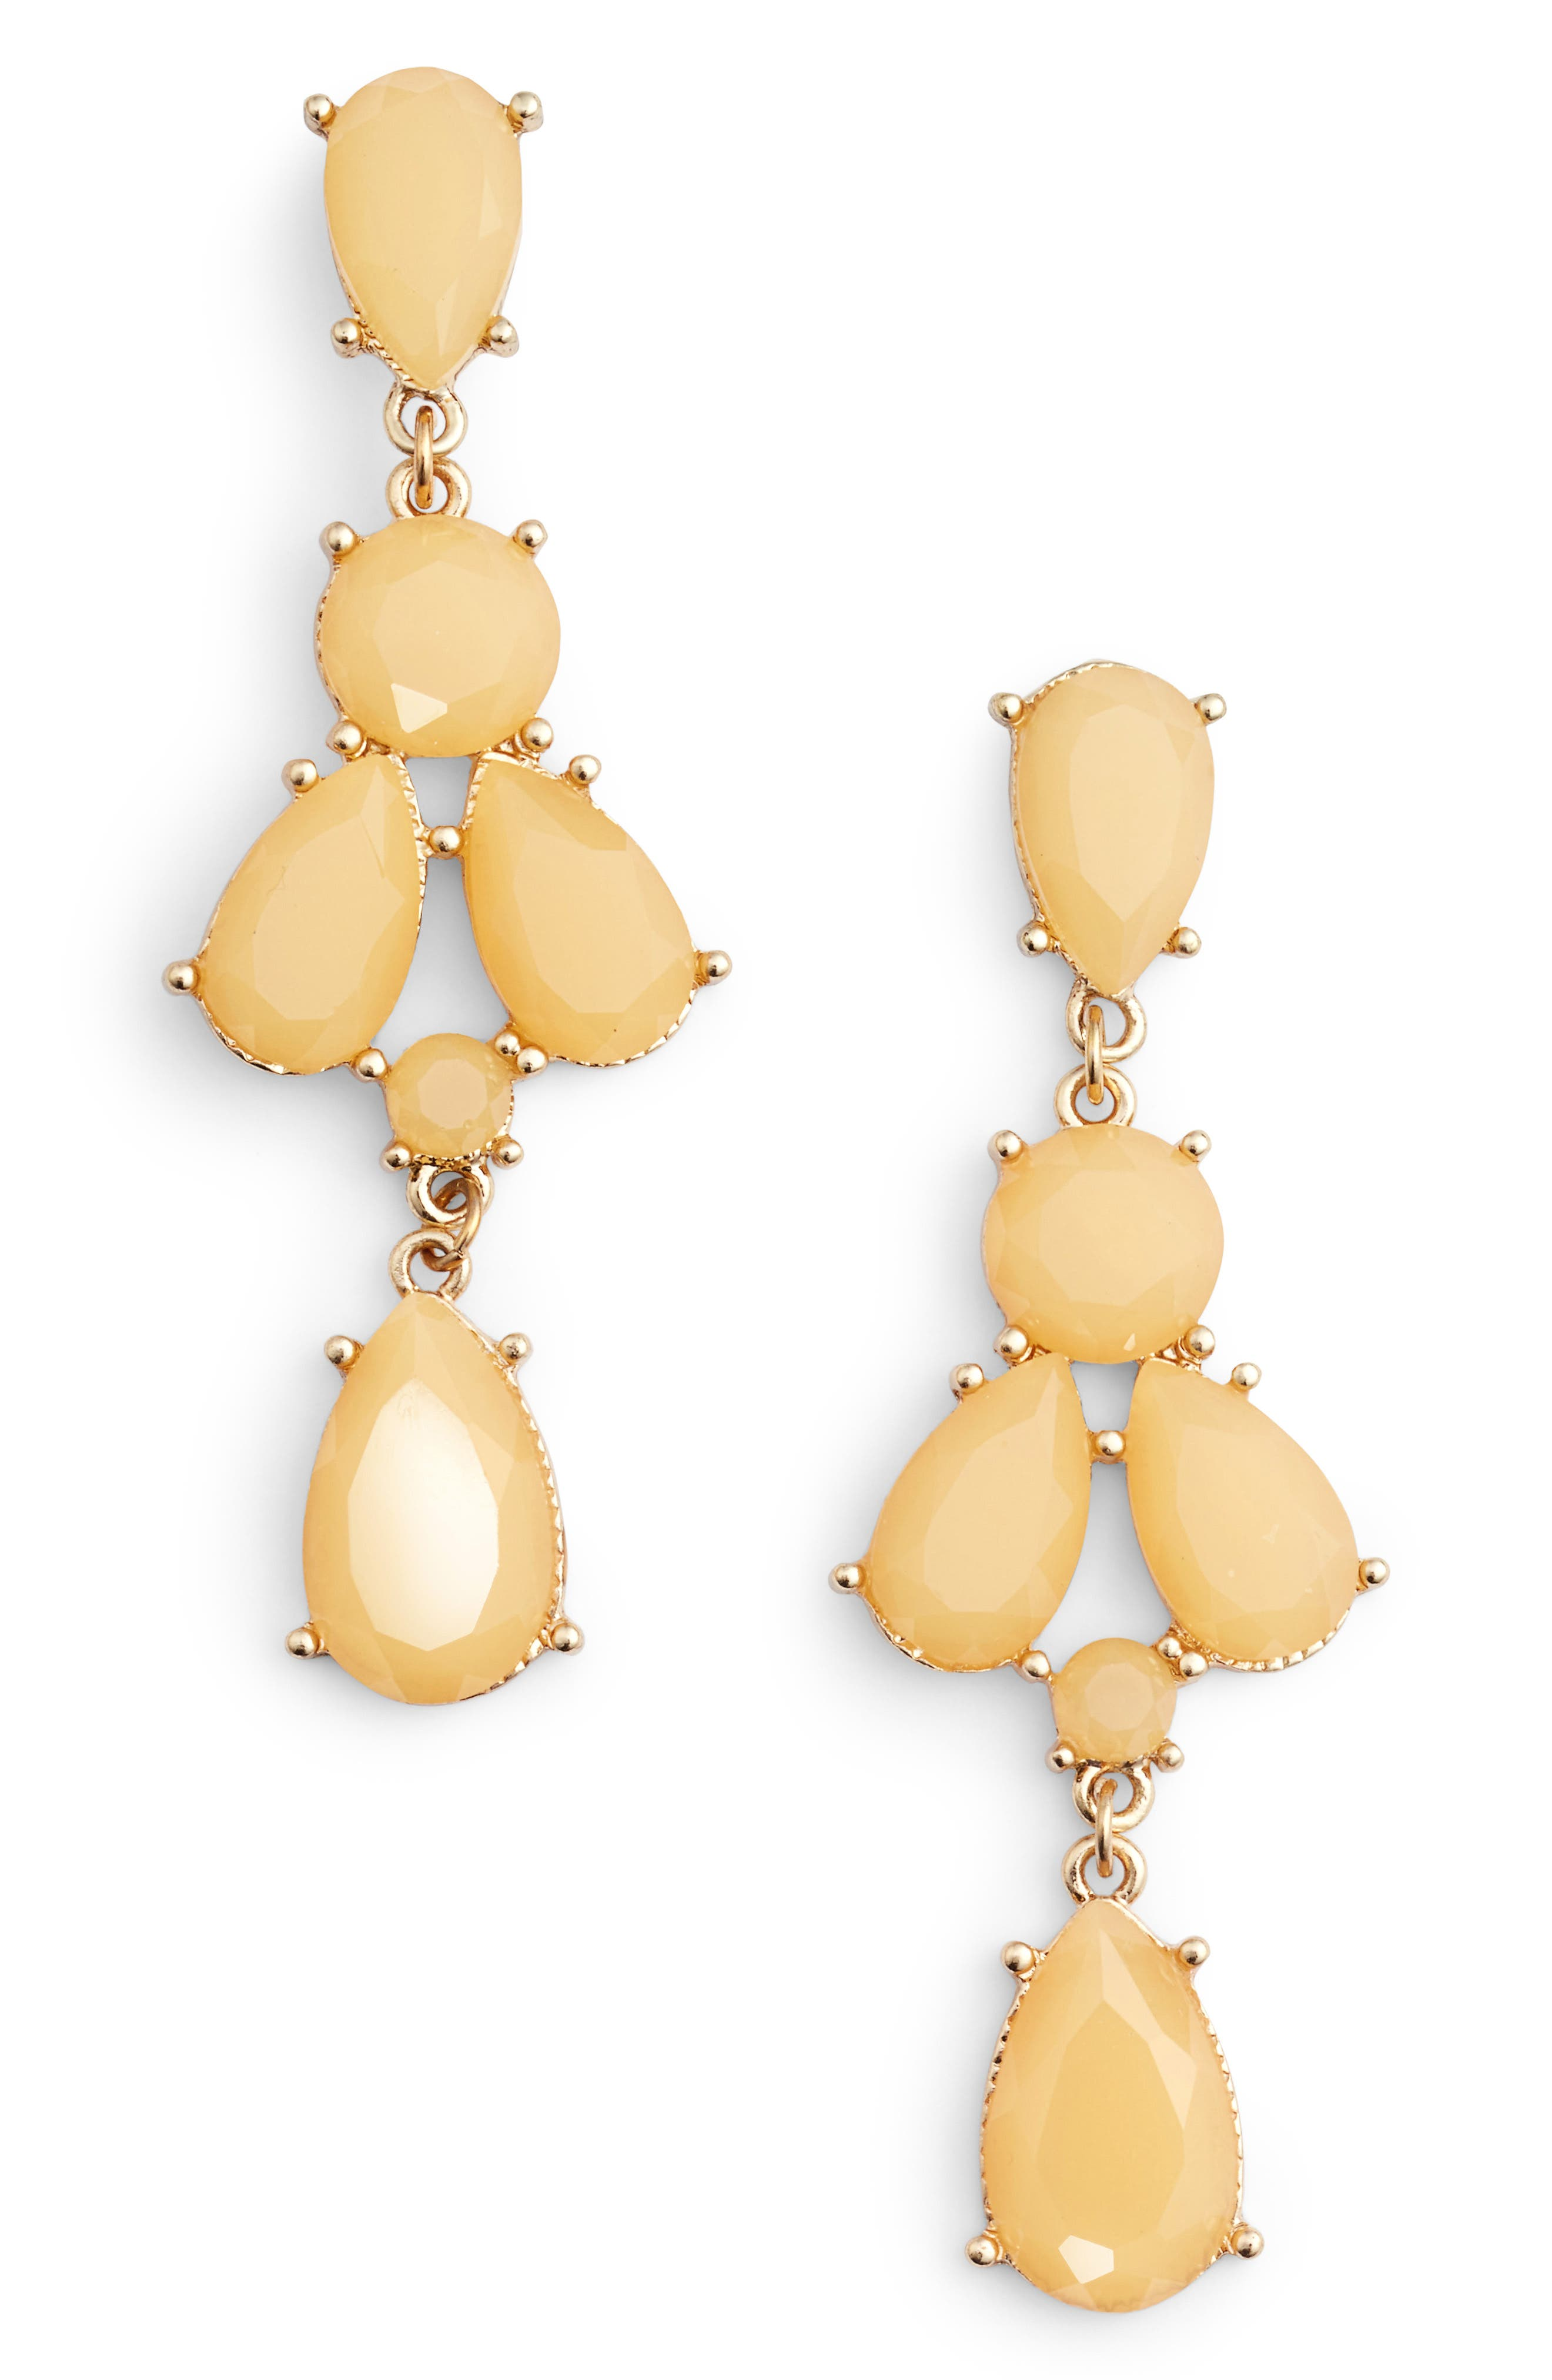 ADIA KIBUR Stone Drop Earrings in Pastel Pink